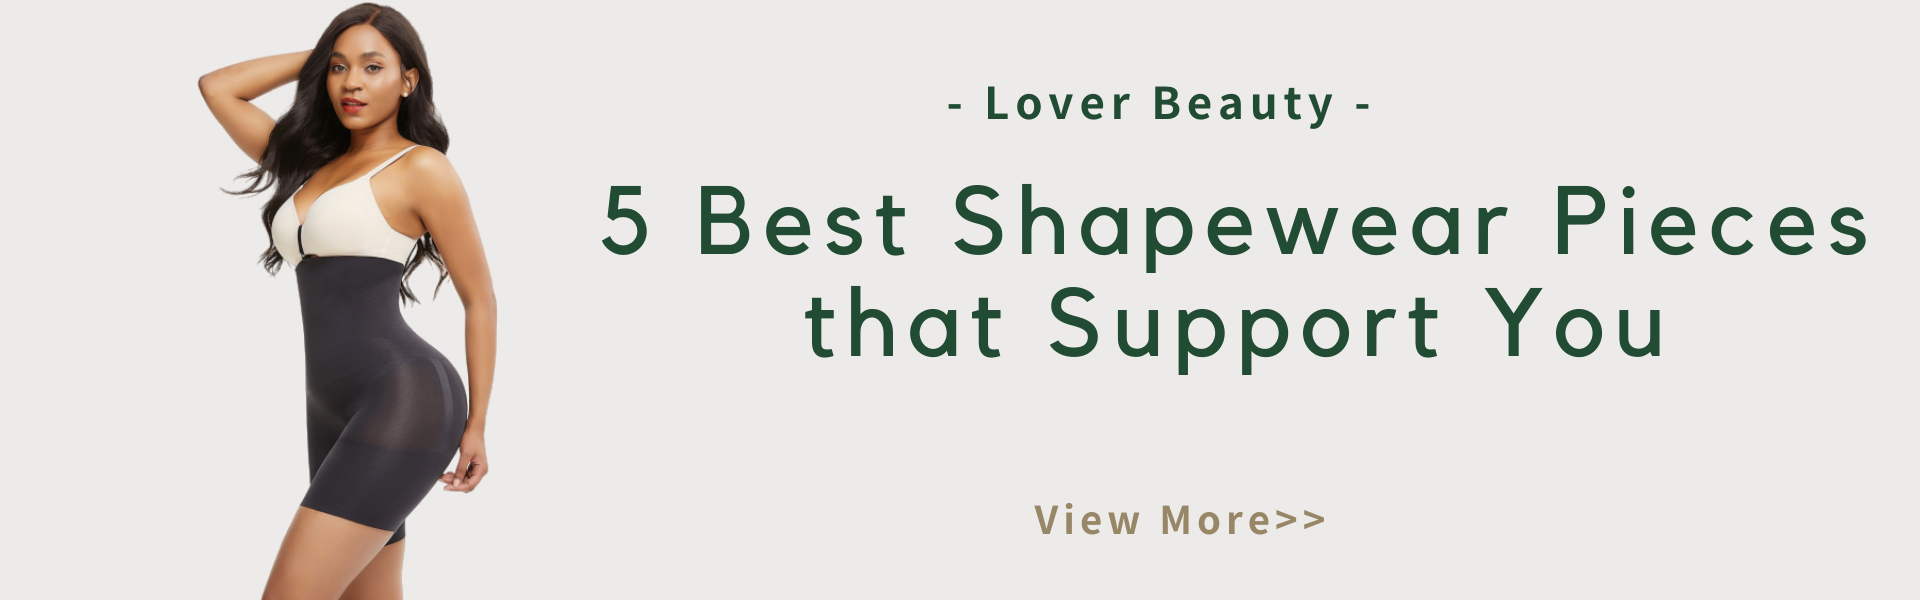 5 Best Shapewear Pieces that Support You